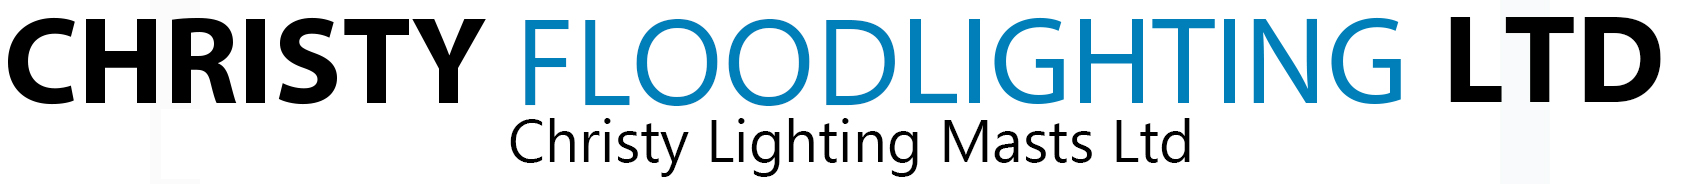 Christy Floodlighting – LED Floodlighting